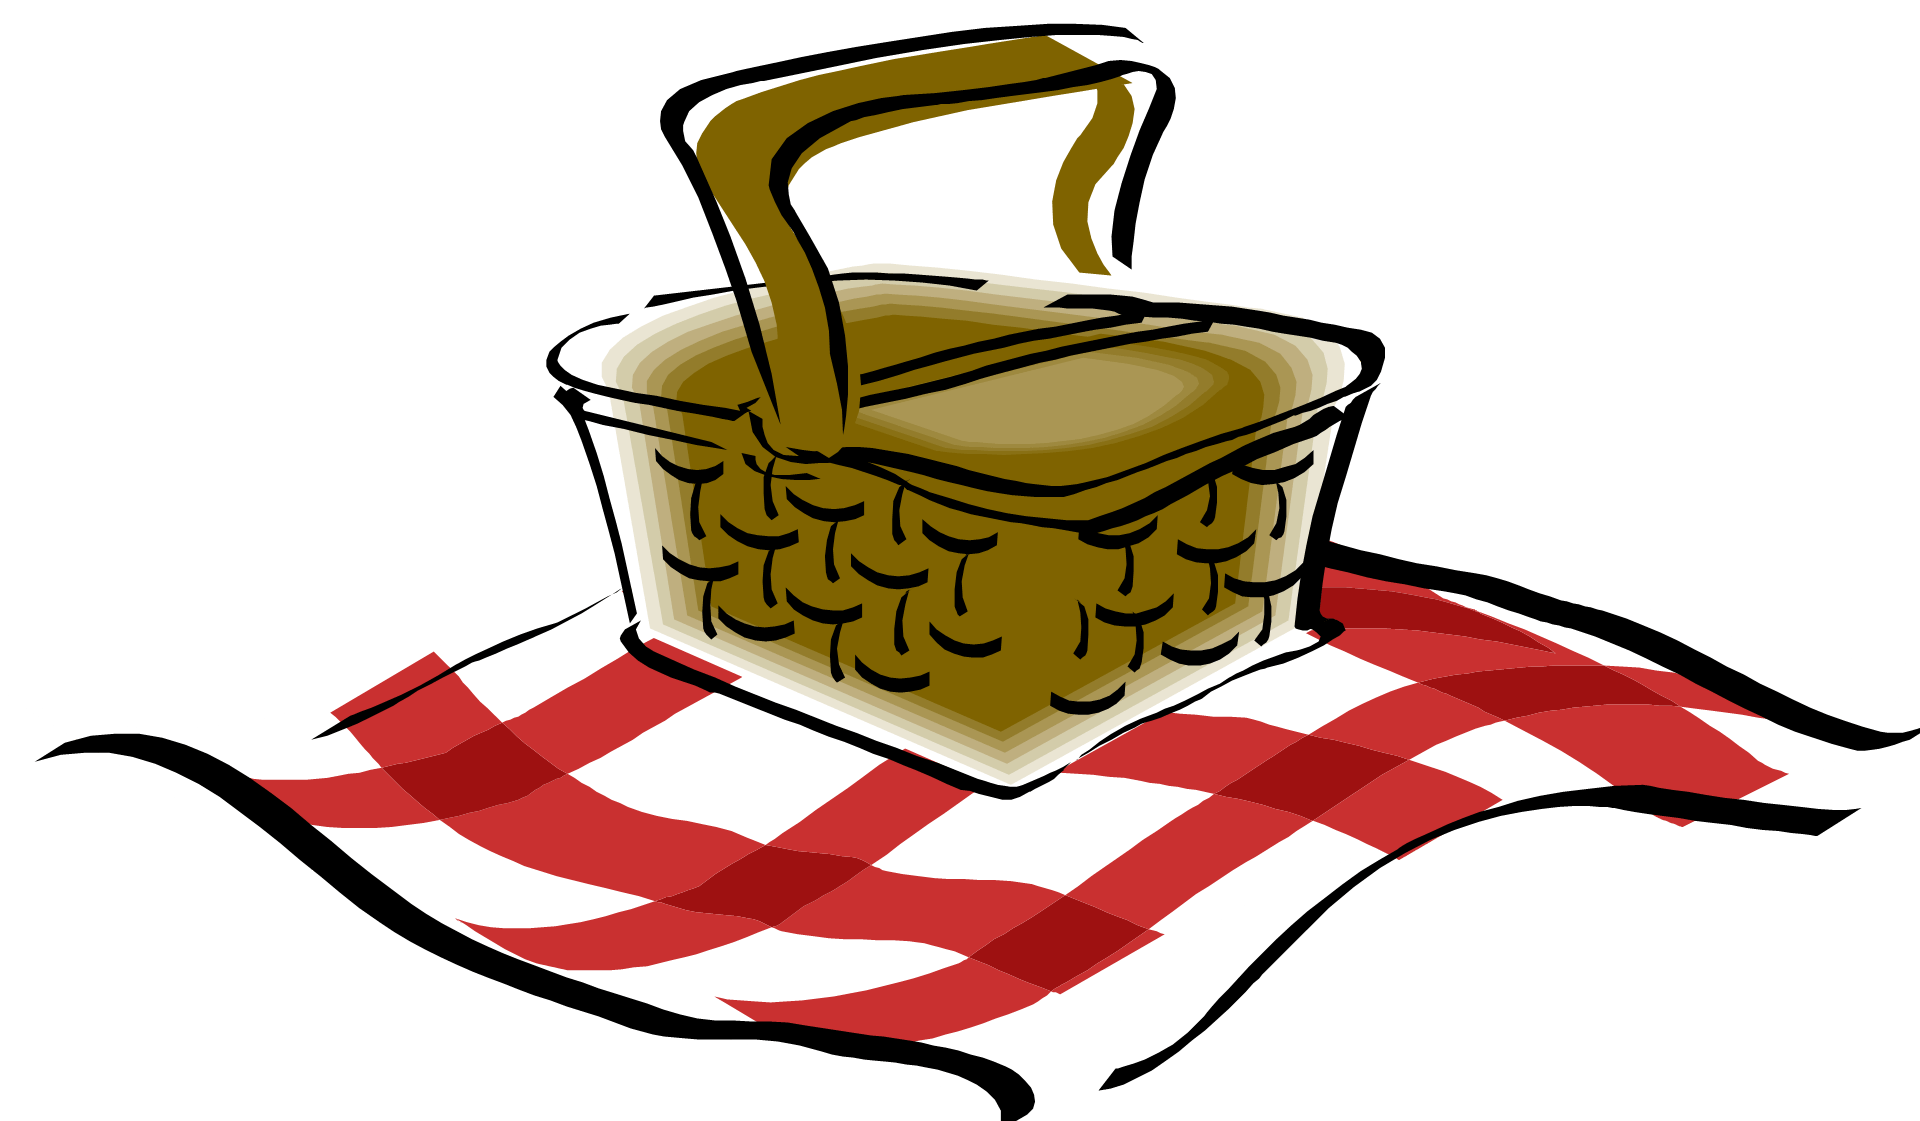 Lady clipart picnic. Event archives page of